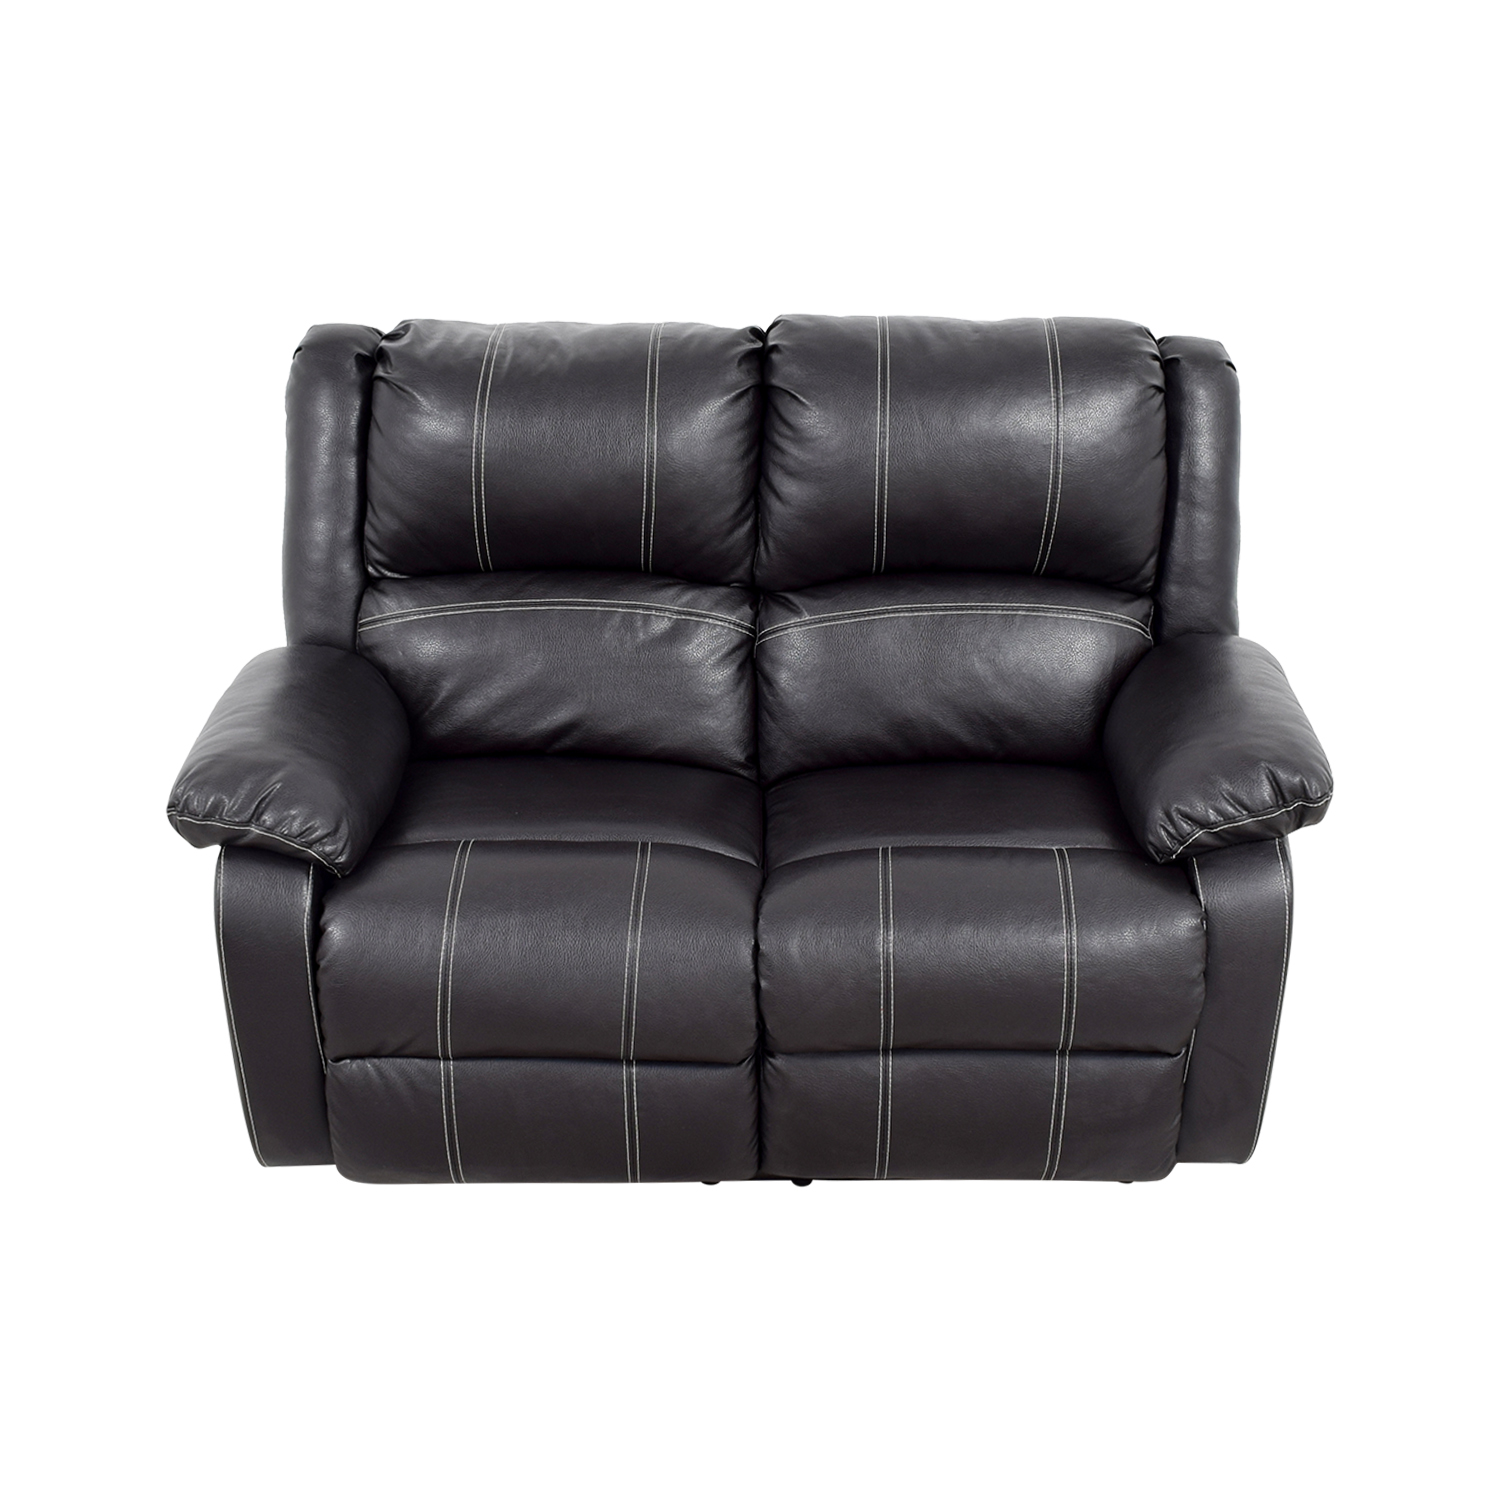 Recliners used recliners for sale Reclining loveseat sale